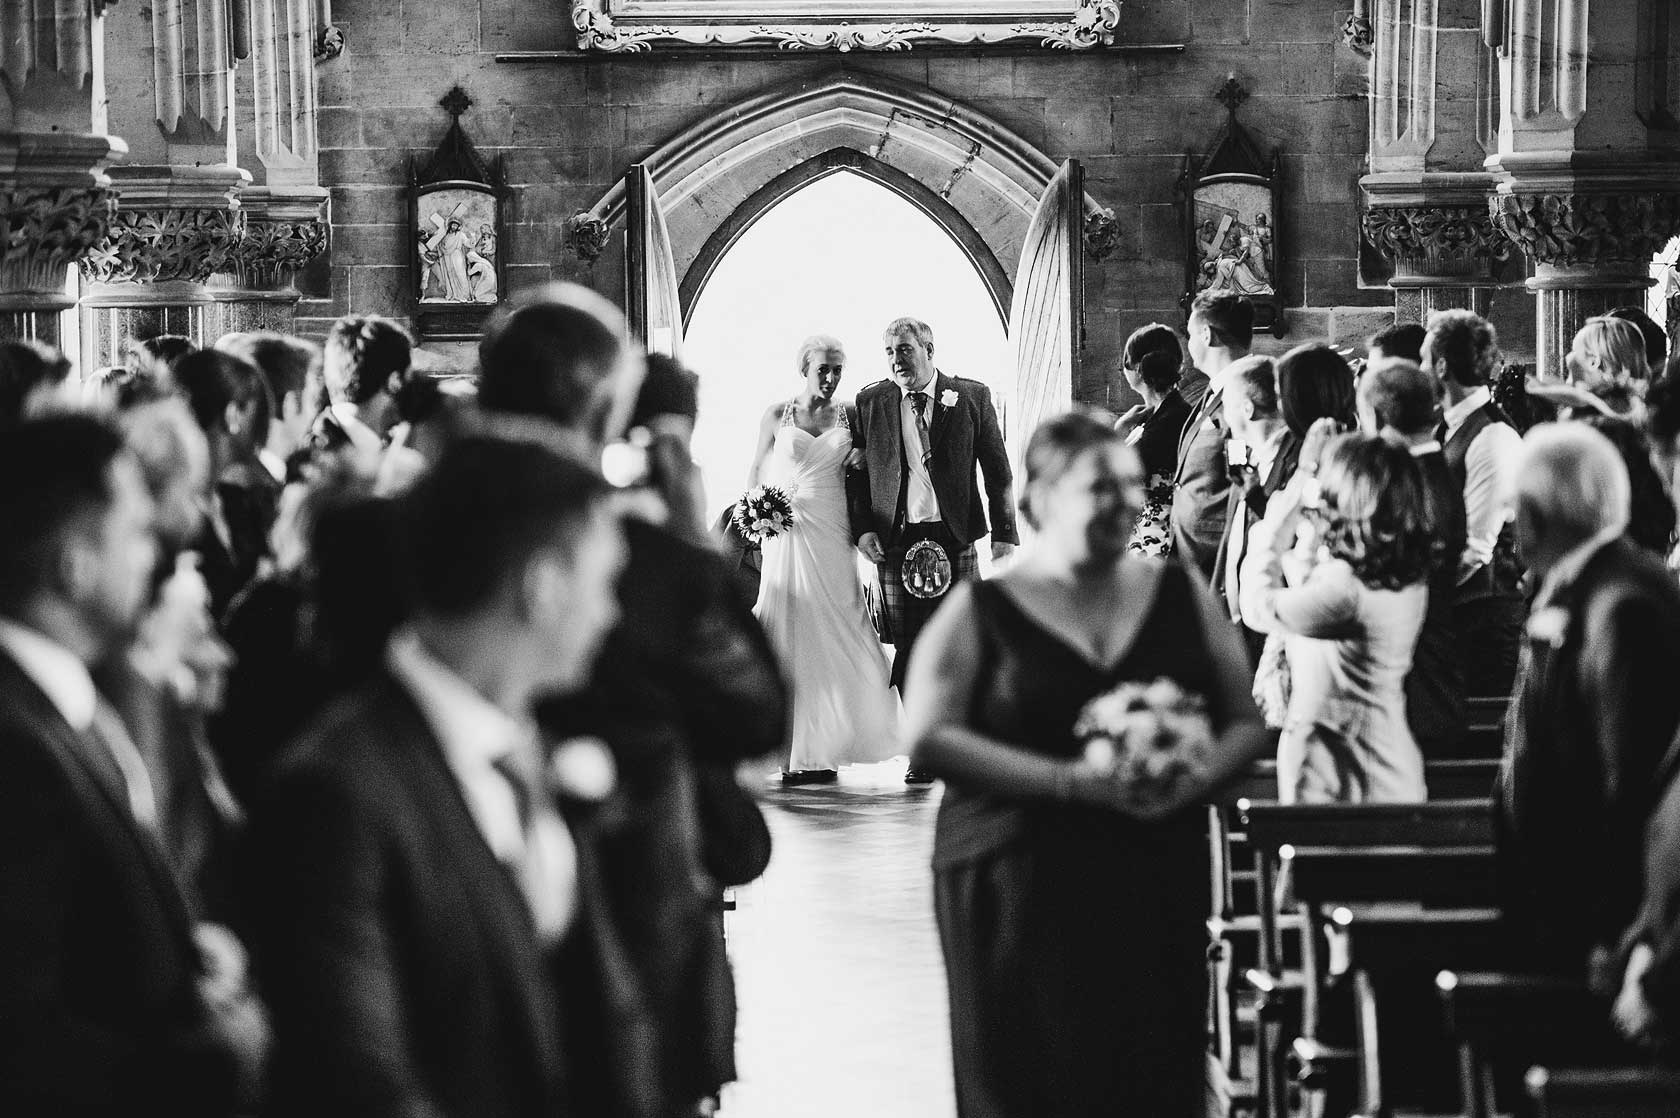 Reportage Wedding Photography in North Yorkshire